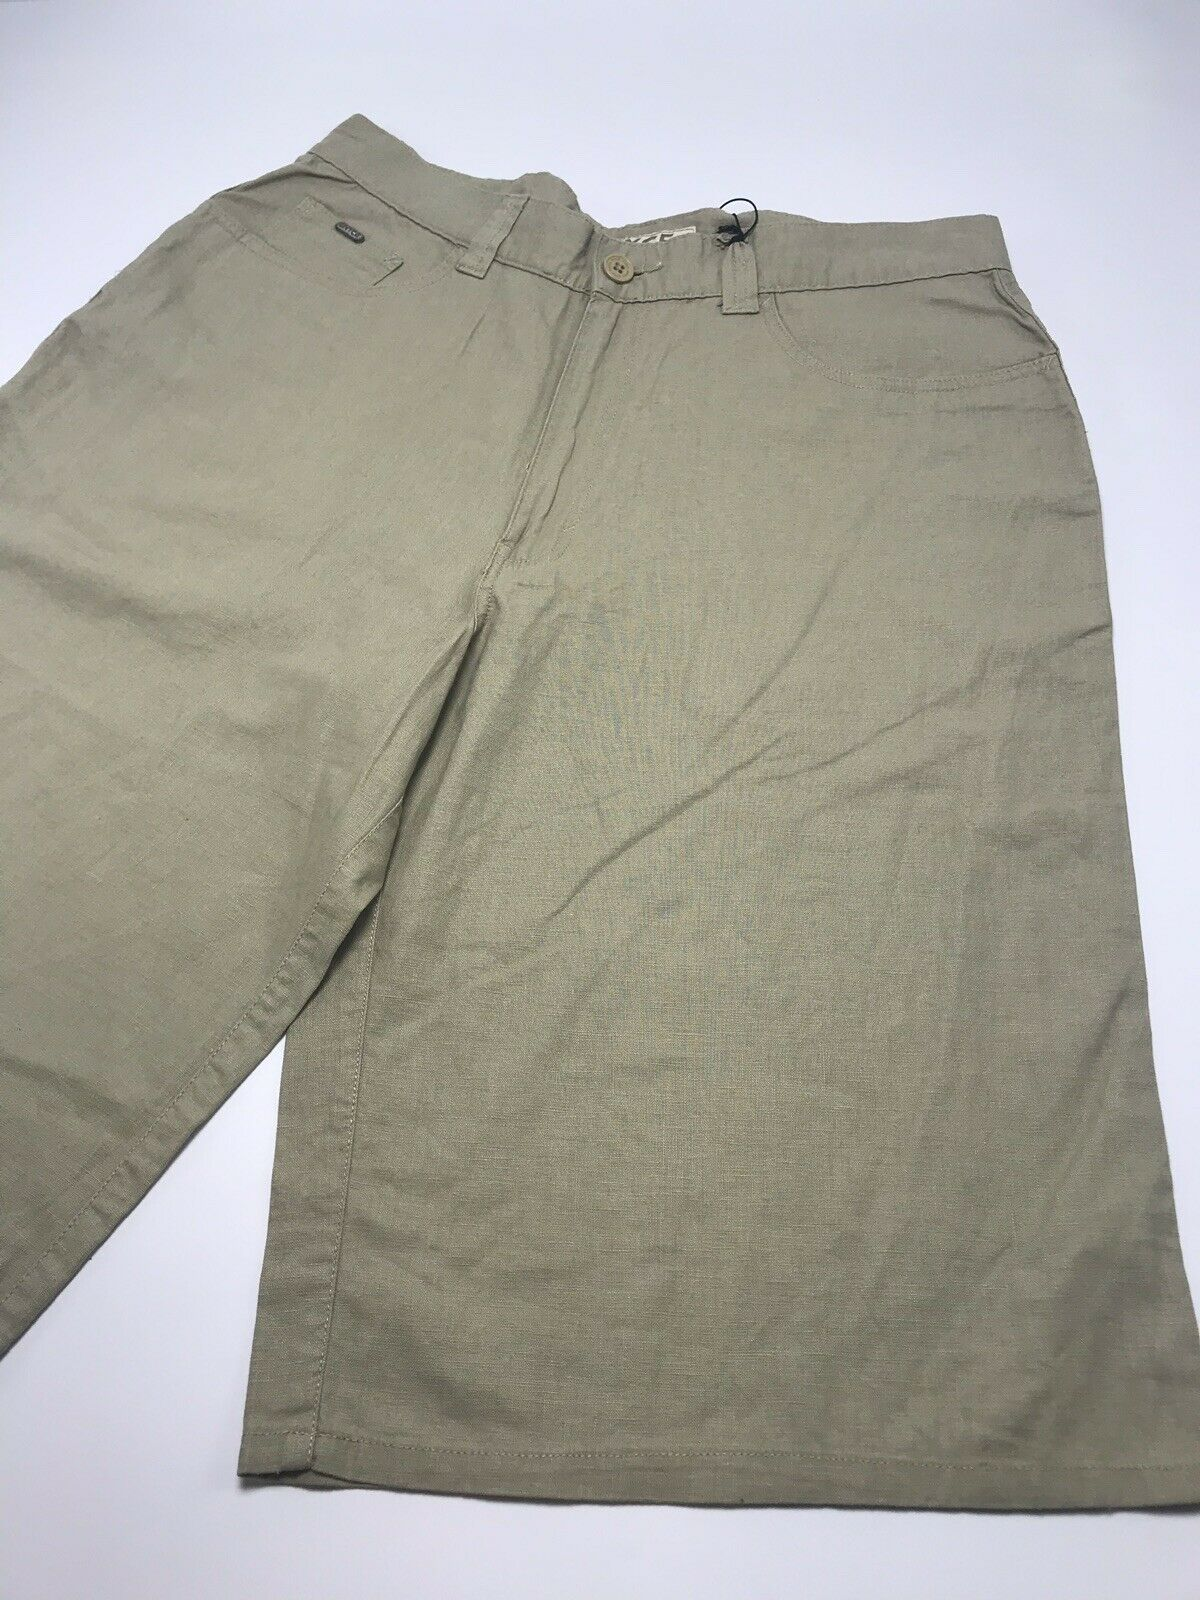 Men's Enyce Khaki Linen Casual Shorts